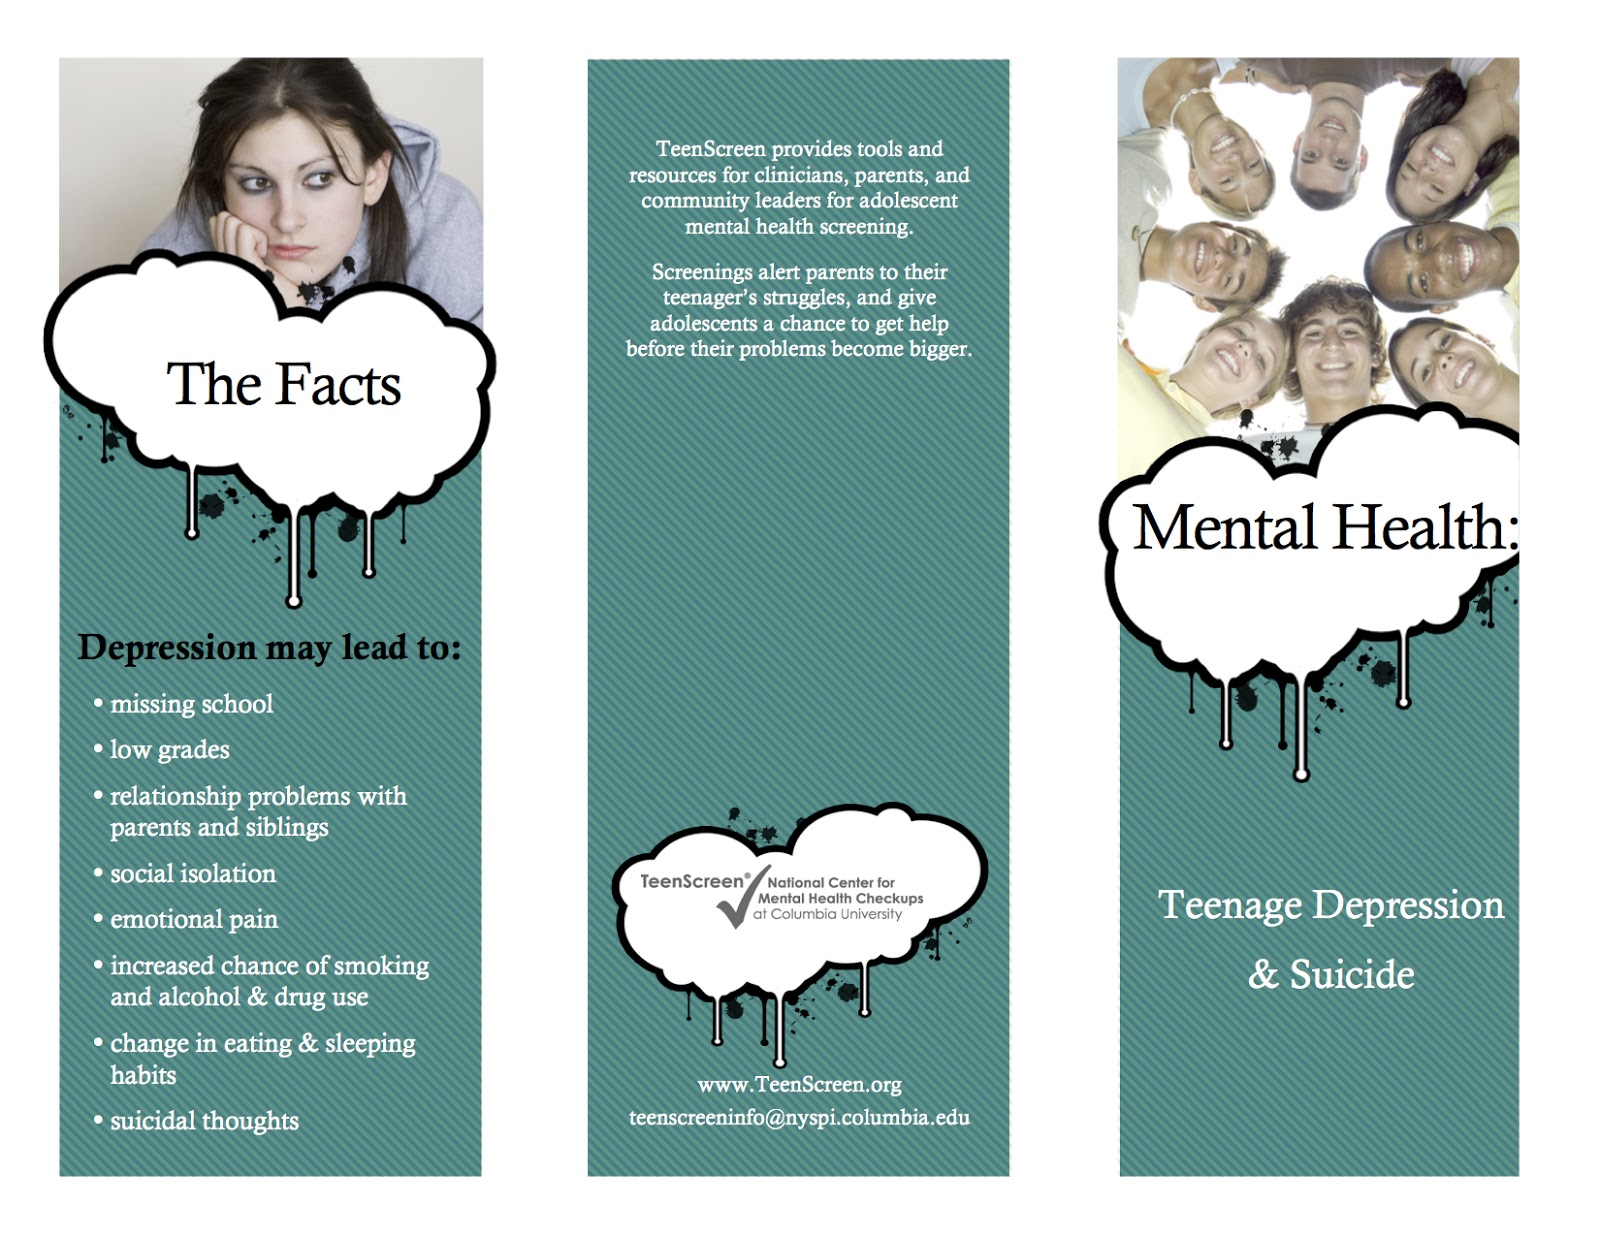 Striving For Mental Health Teen Depression & Suicide Brochure